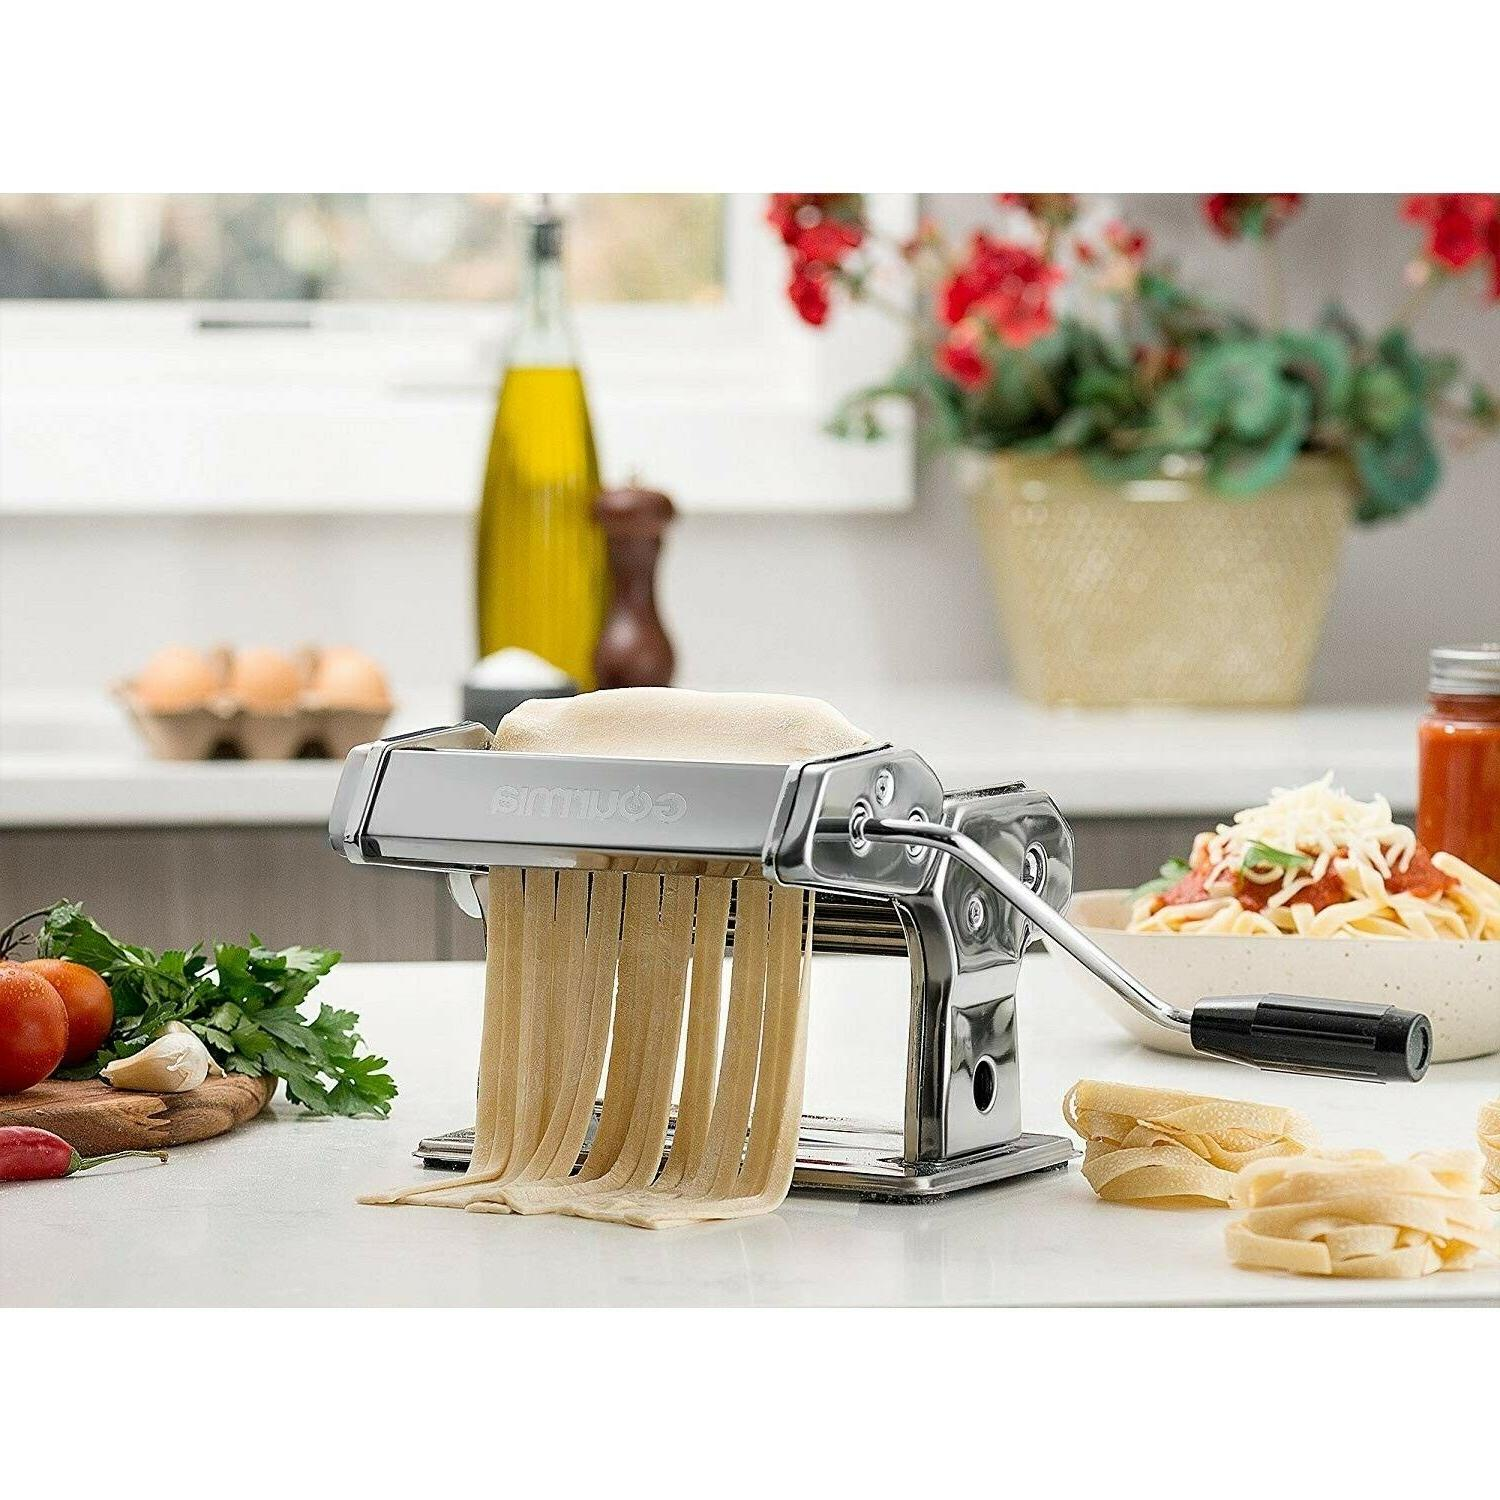 Maker Pasta Machine Steel Cutter Manual